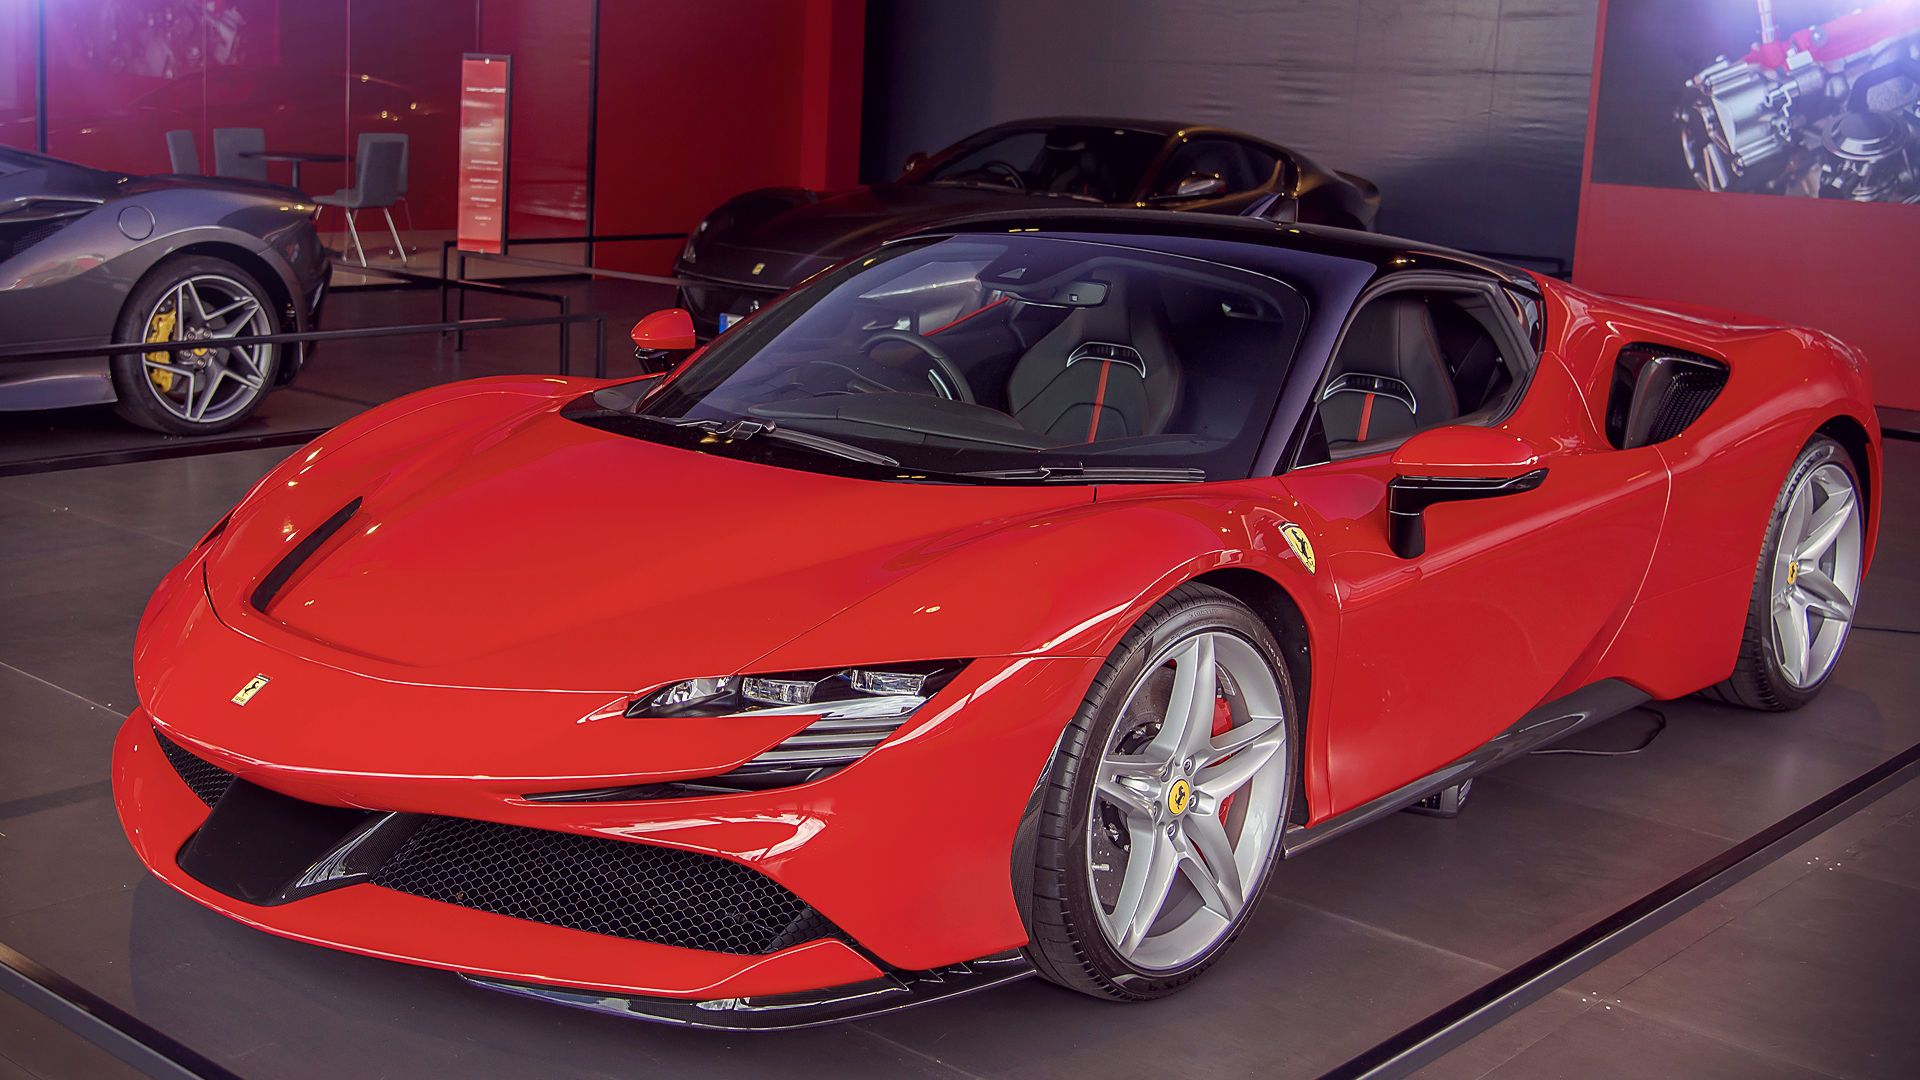 Most Powerful Ferrari - The Most Powerful Ferraris Ever